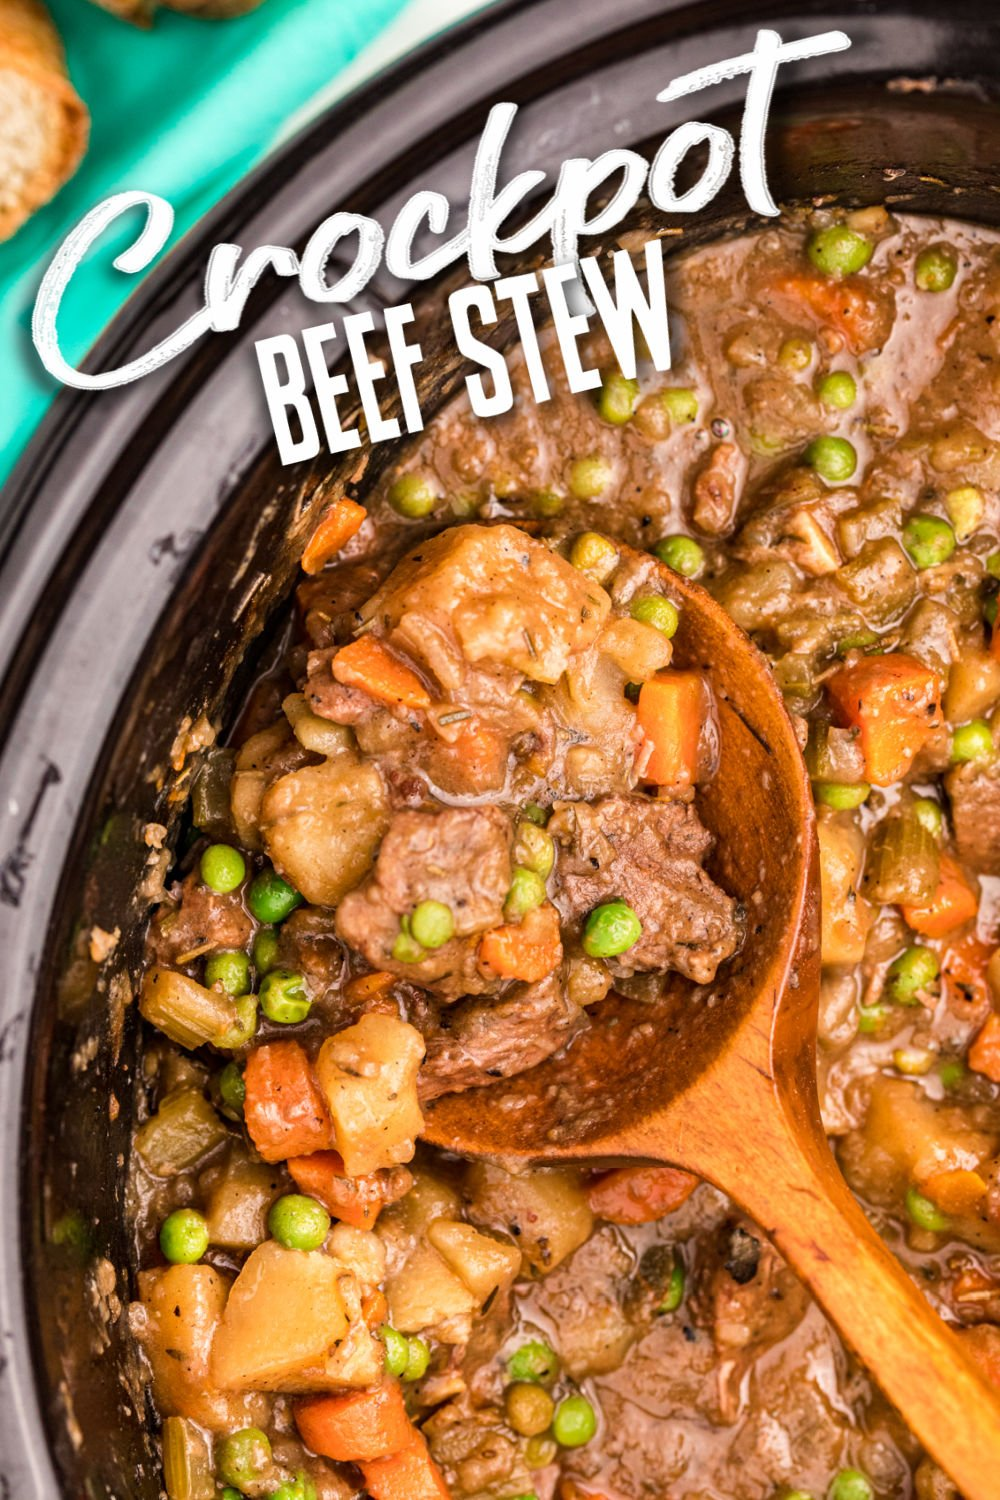 Easy slow cooker beef stew is thick and hearty and the definition of comfort food. Made in the crockpot, this stew is filled with tender beef, carrots, and peas and is a family favorite. | www.persnicketyplates.com